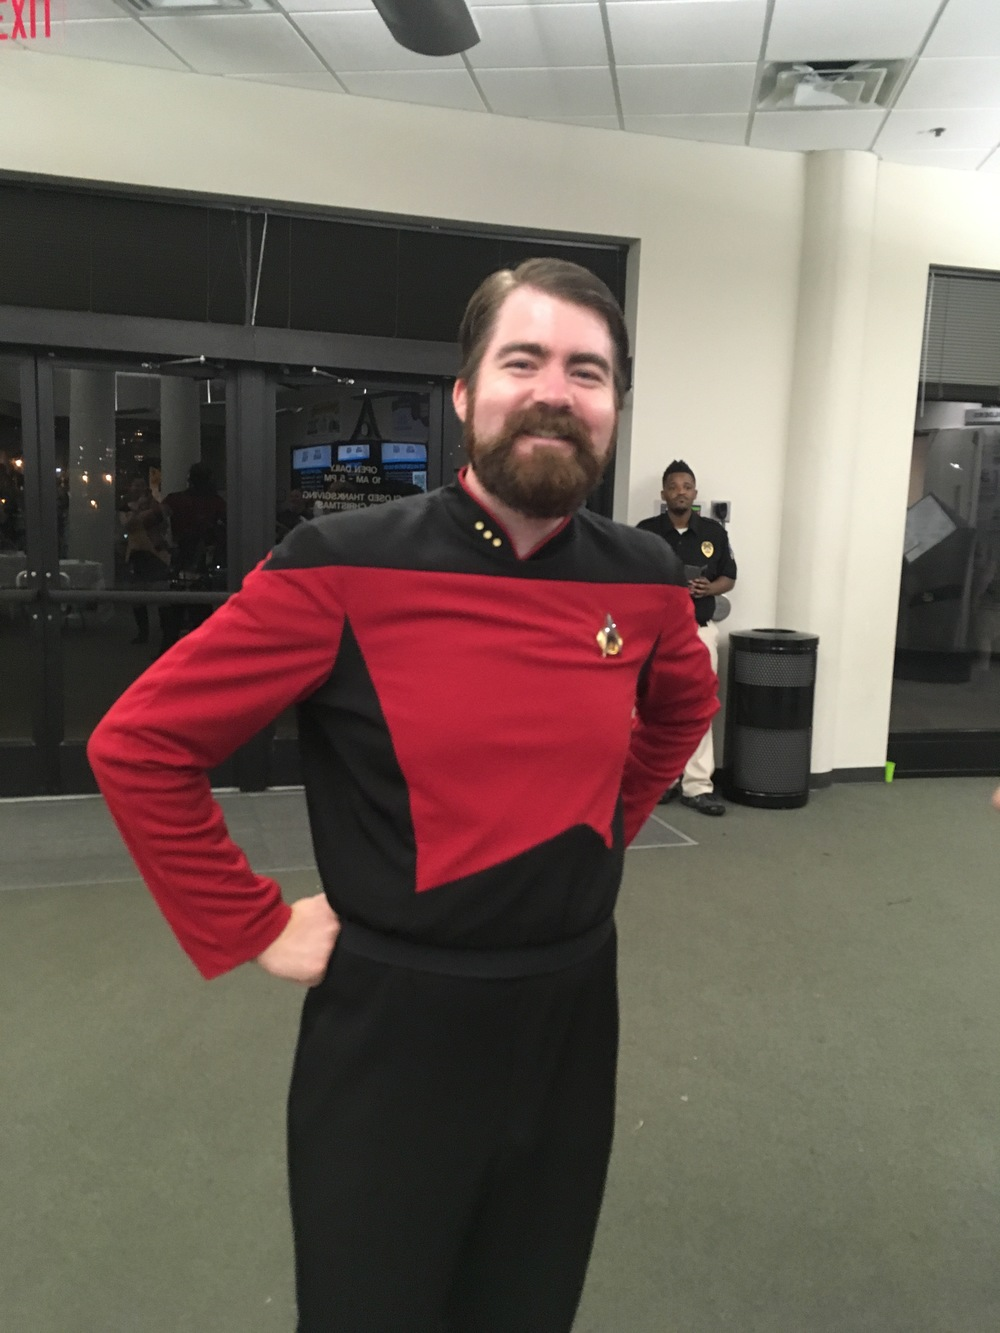 The split between Star Trek and Star Wars representation was pretty evenly split, but the trekkies seemed more broad in their costuming choices.  There were far fewer specific characters and more general members of Star Fleet.  I did, however, find this great Riker.